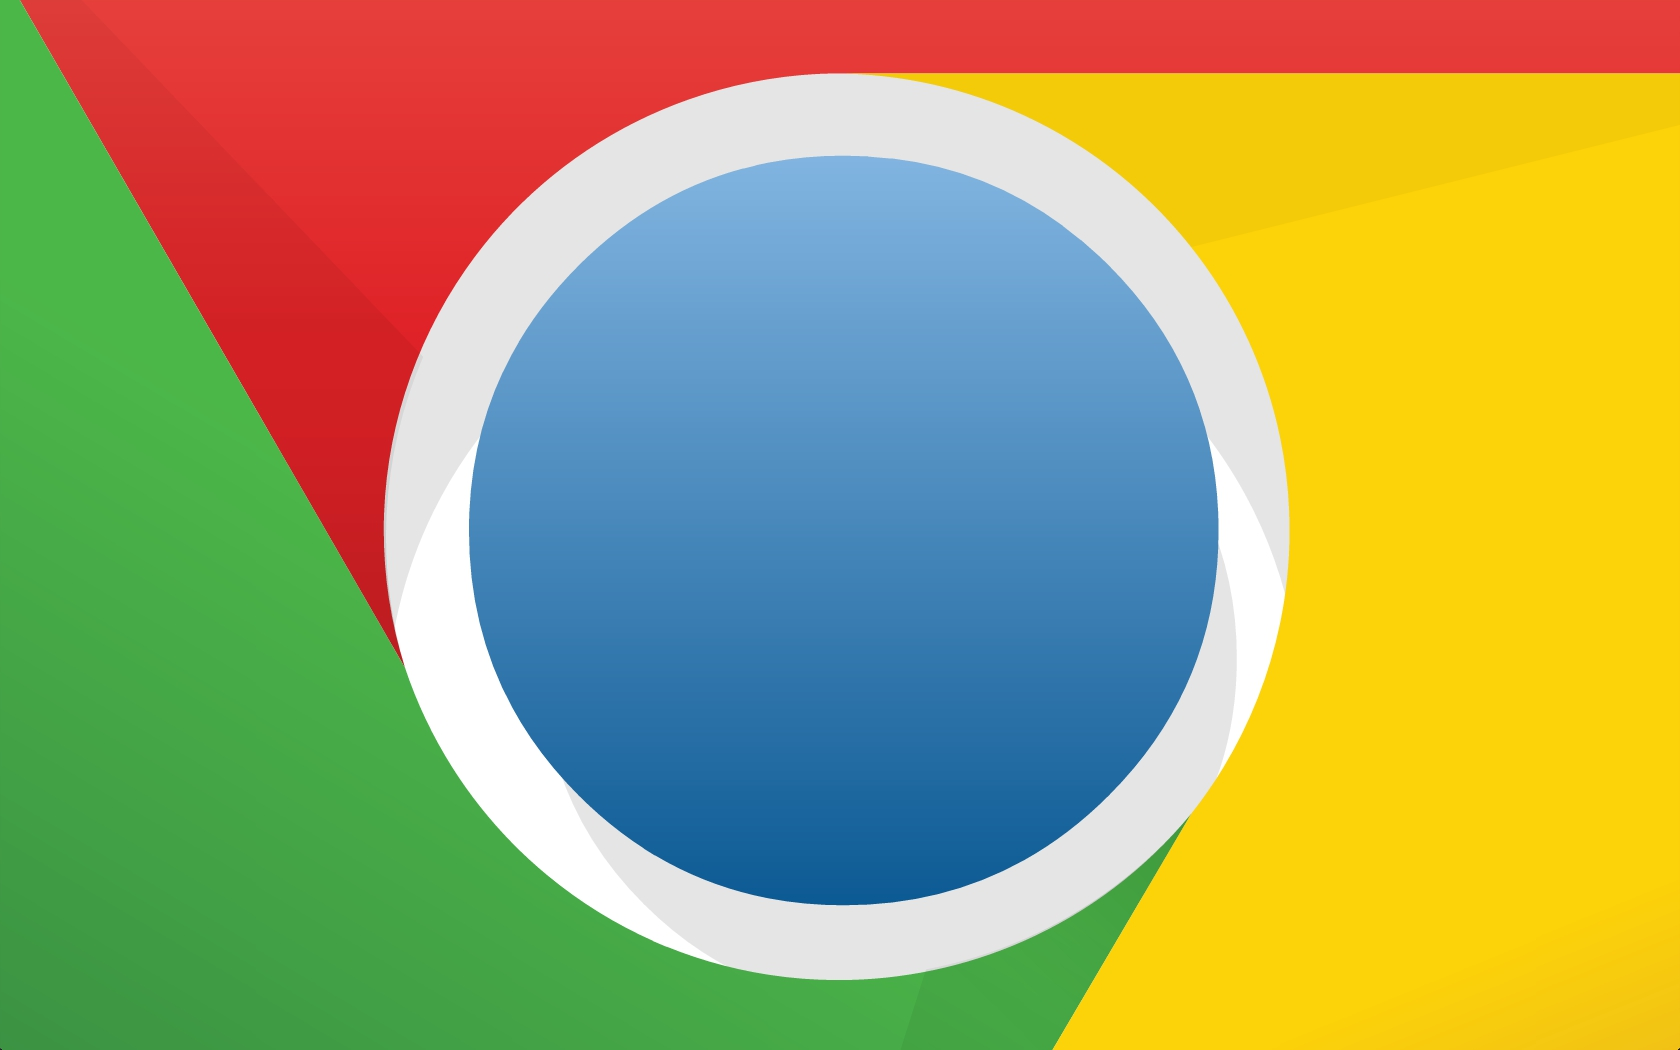 Chrome will start blocking 'intrusive' ads starting February 15